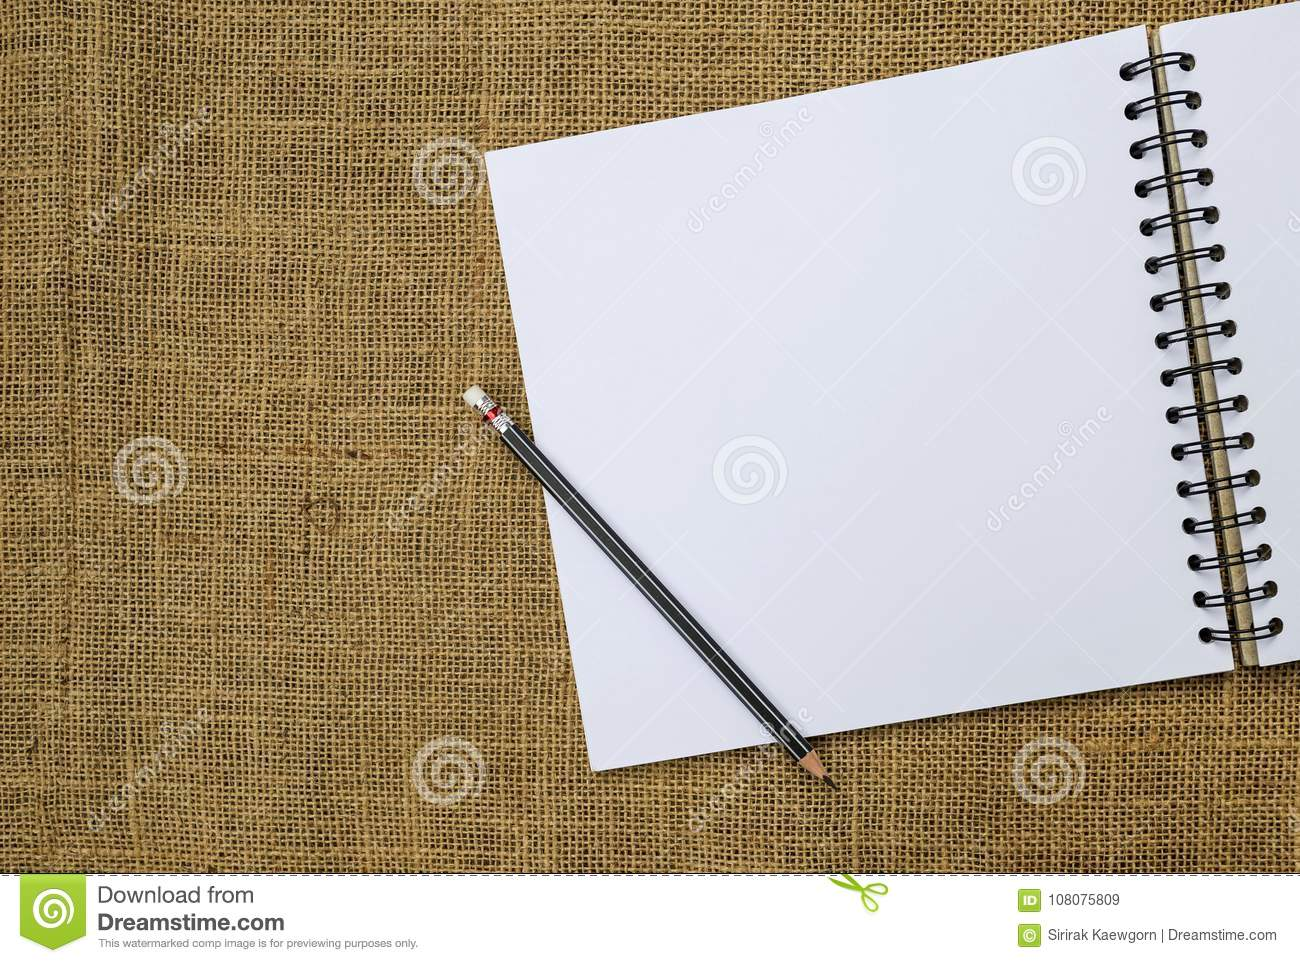 Blank white sketch book and black pencil with space on hessian fabric background